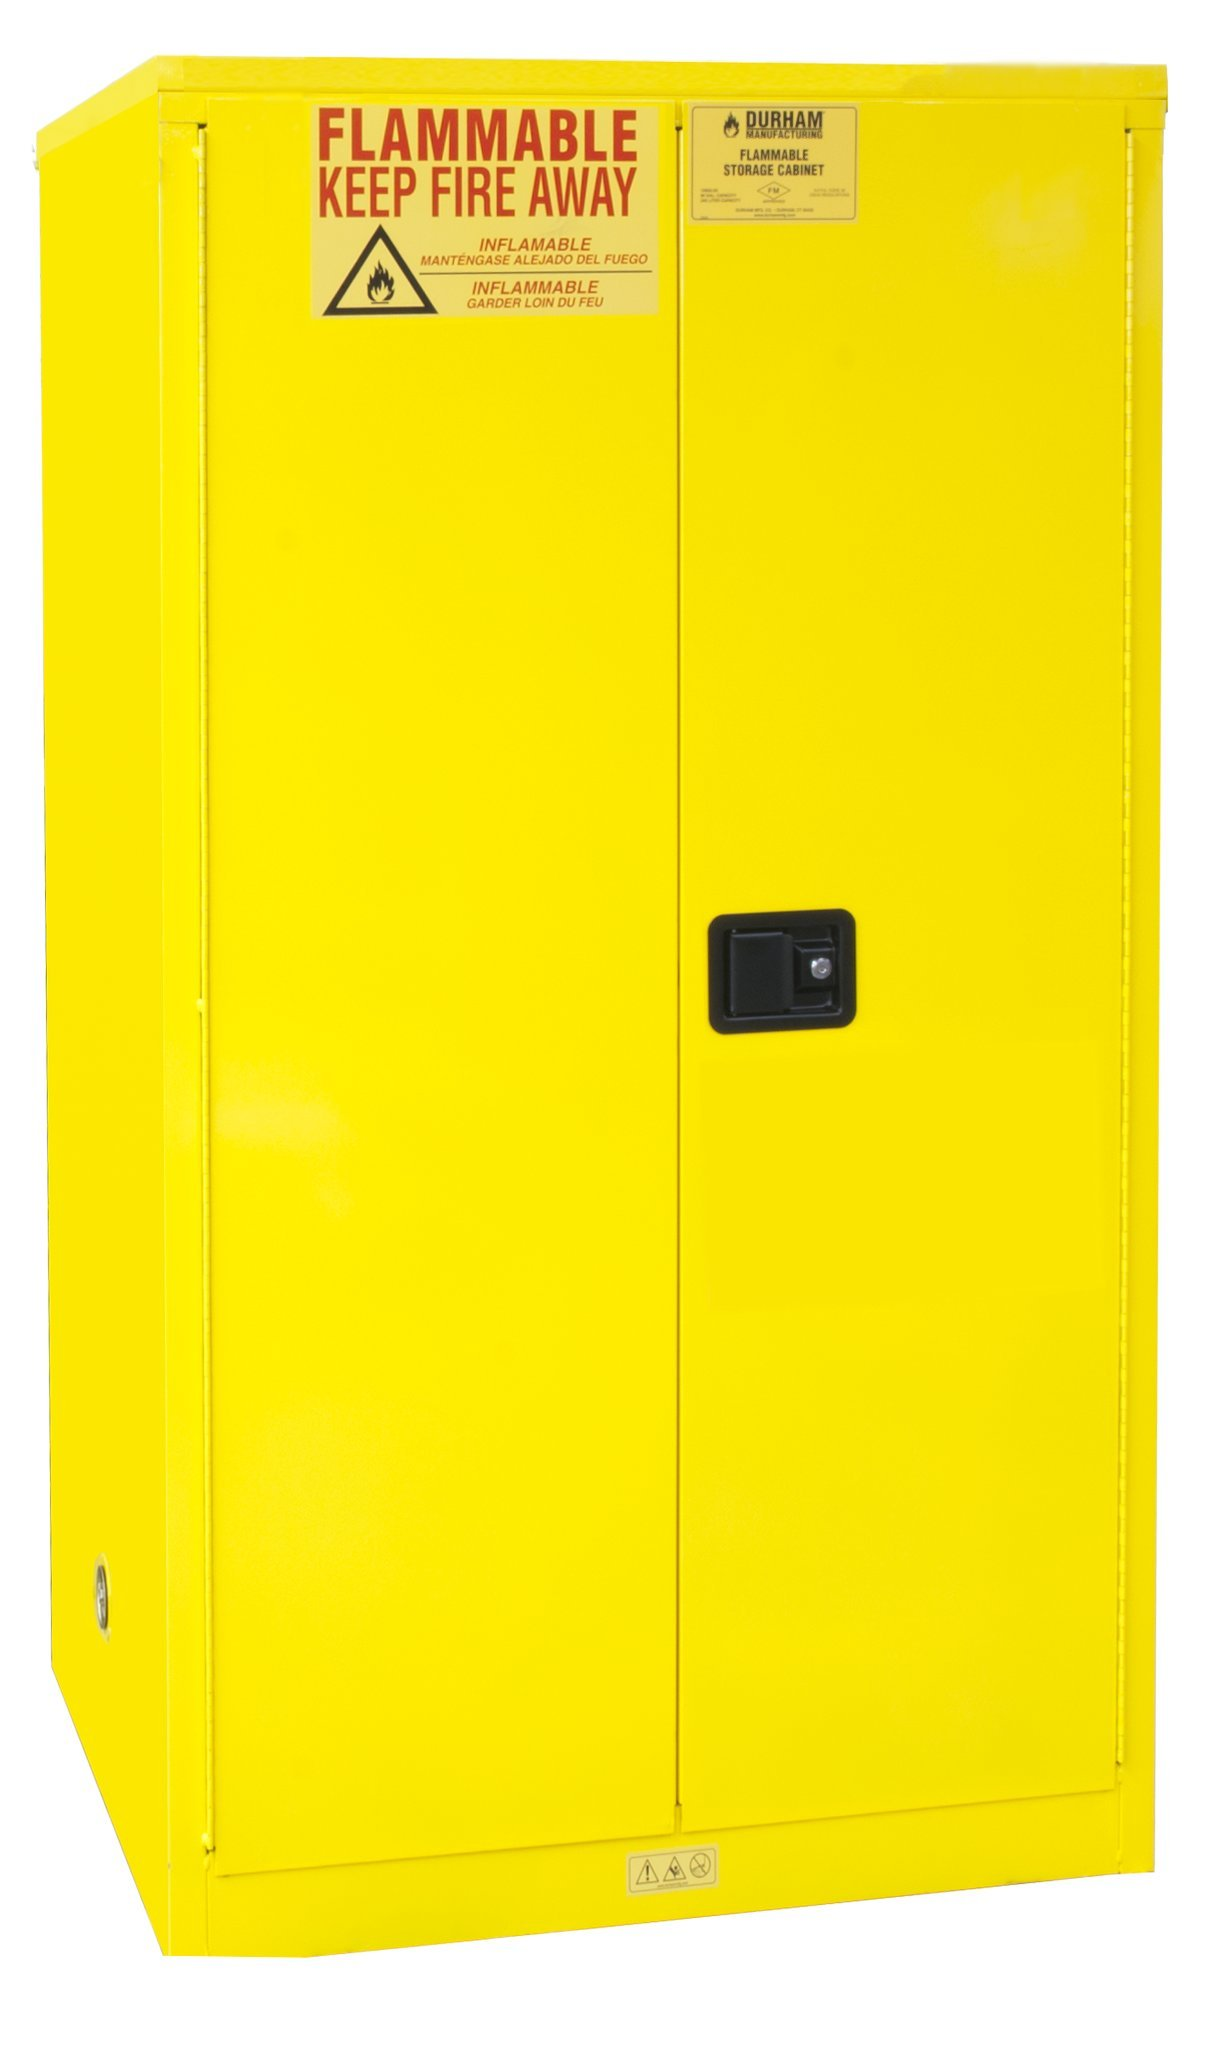 Durham FM Approved 1060M-50 Welded 16 Gauge Steel Flammable Safety Manual Door Cabinet, 2 Shelves, 60 gallons Capacity, 34'' Length x 34'' Width x 65'' Height, Yellow Powder Coat Finish